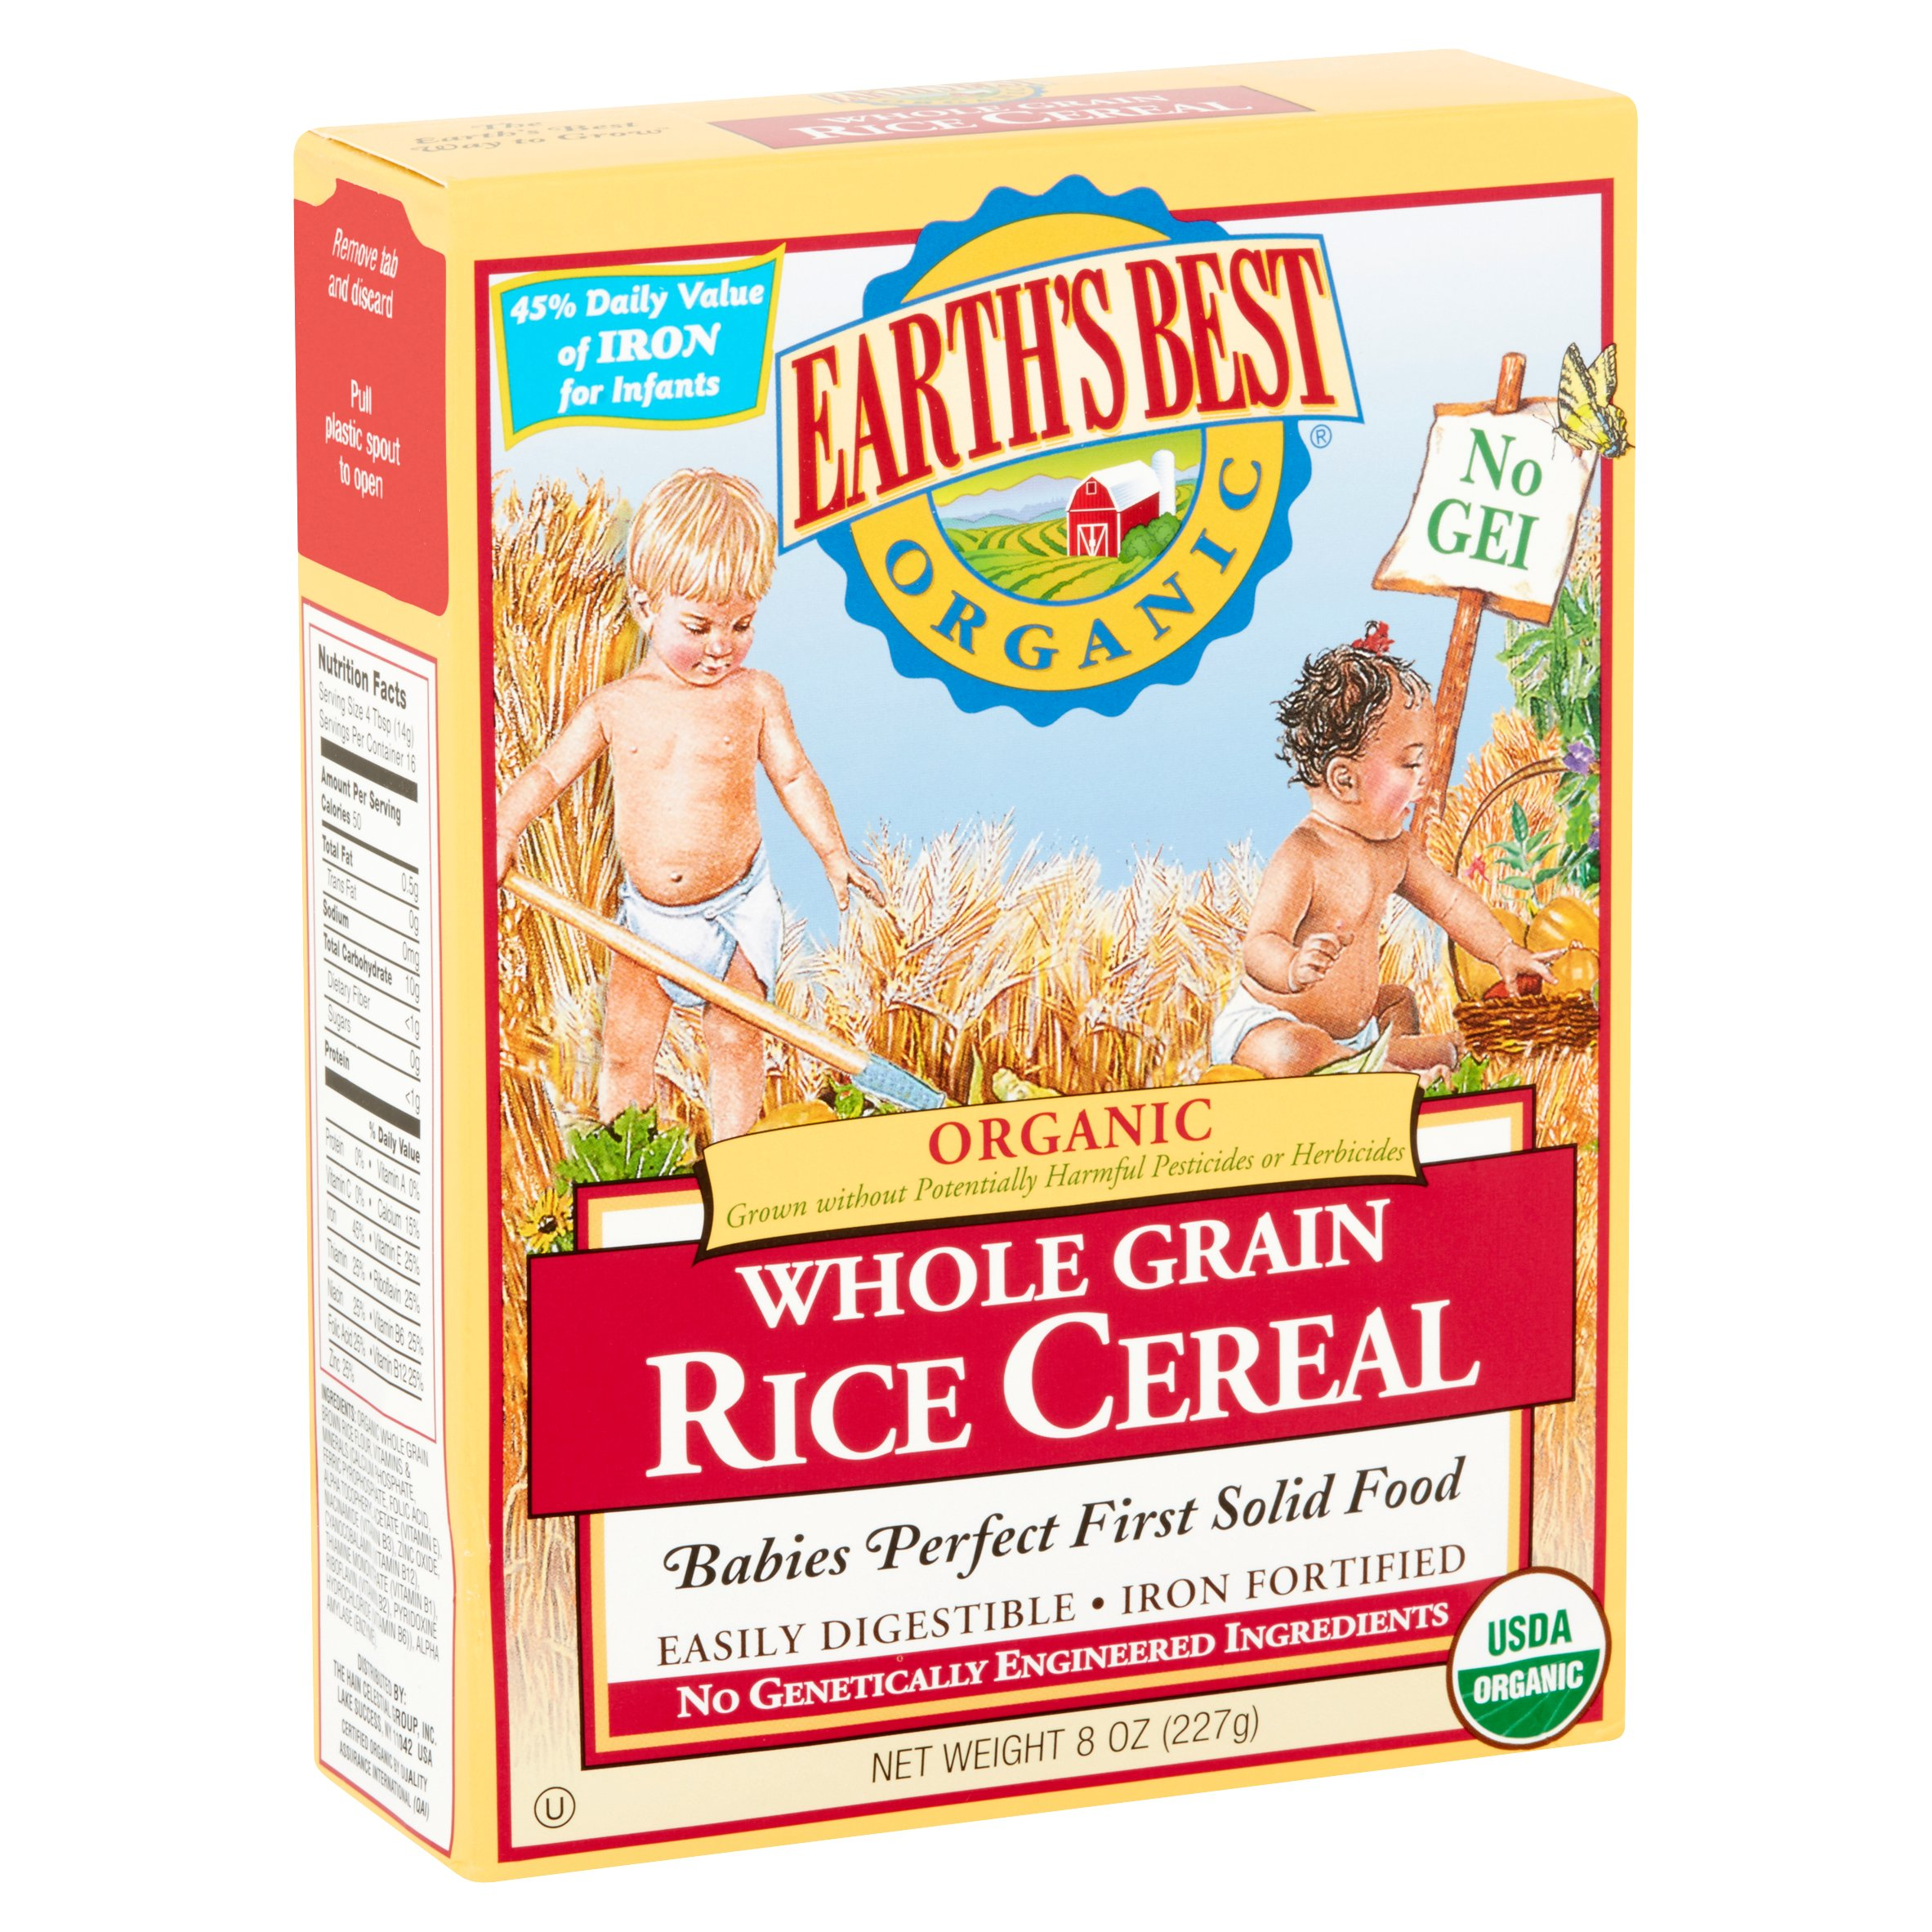 Earths best organic whole grain rice cereal 8 oz walmart ccuart Choice Image